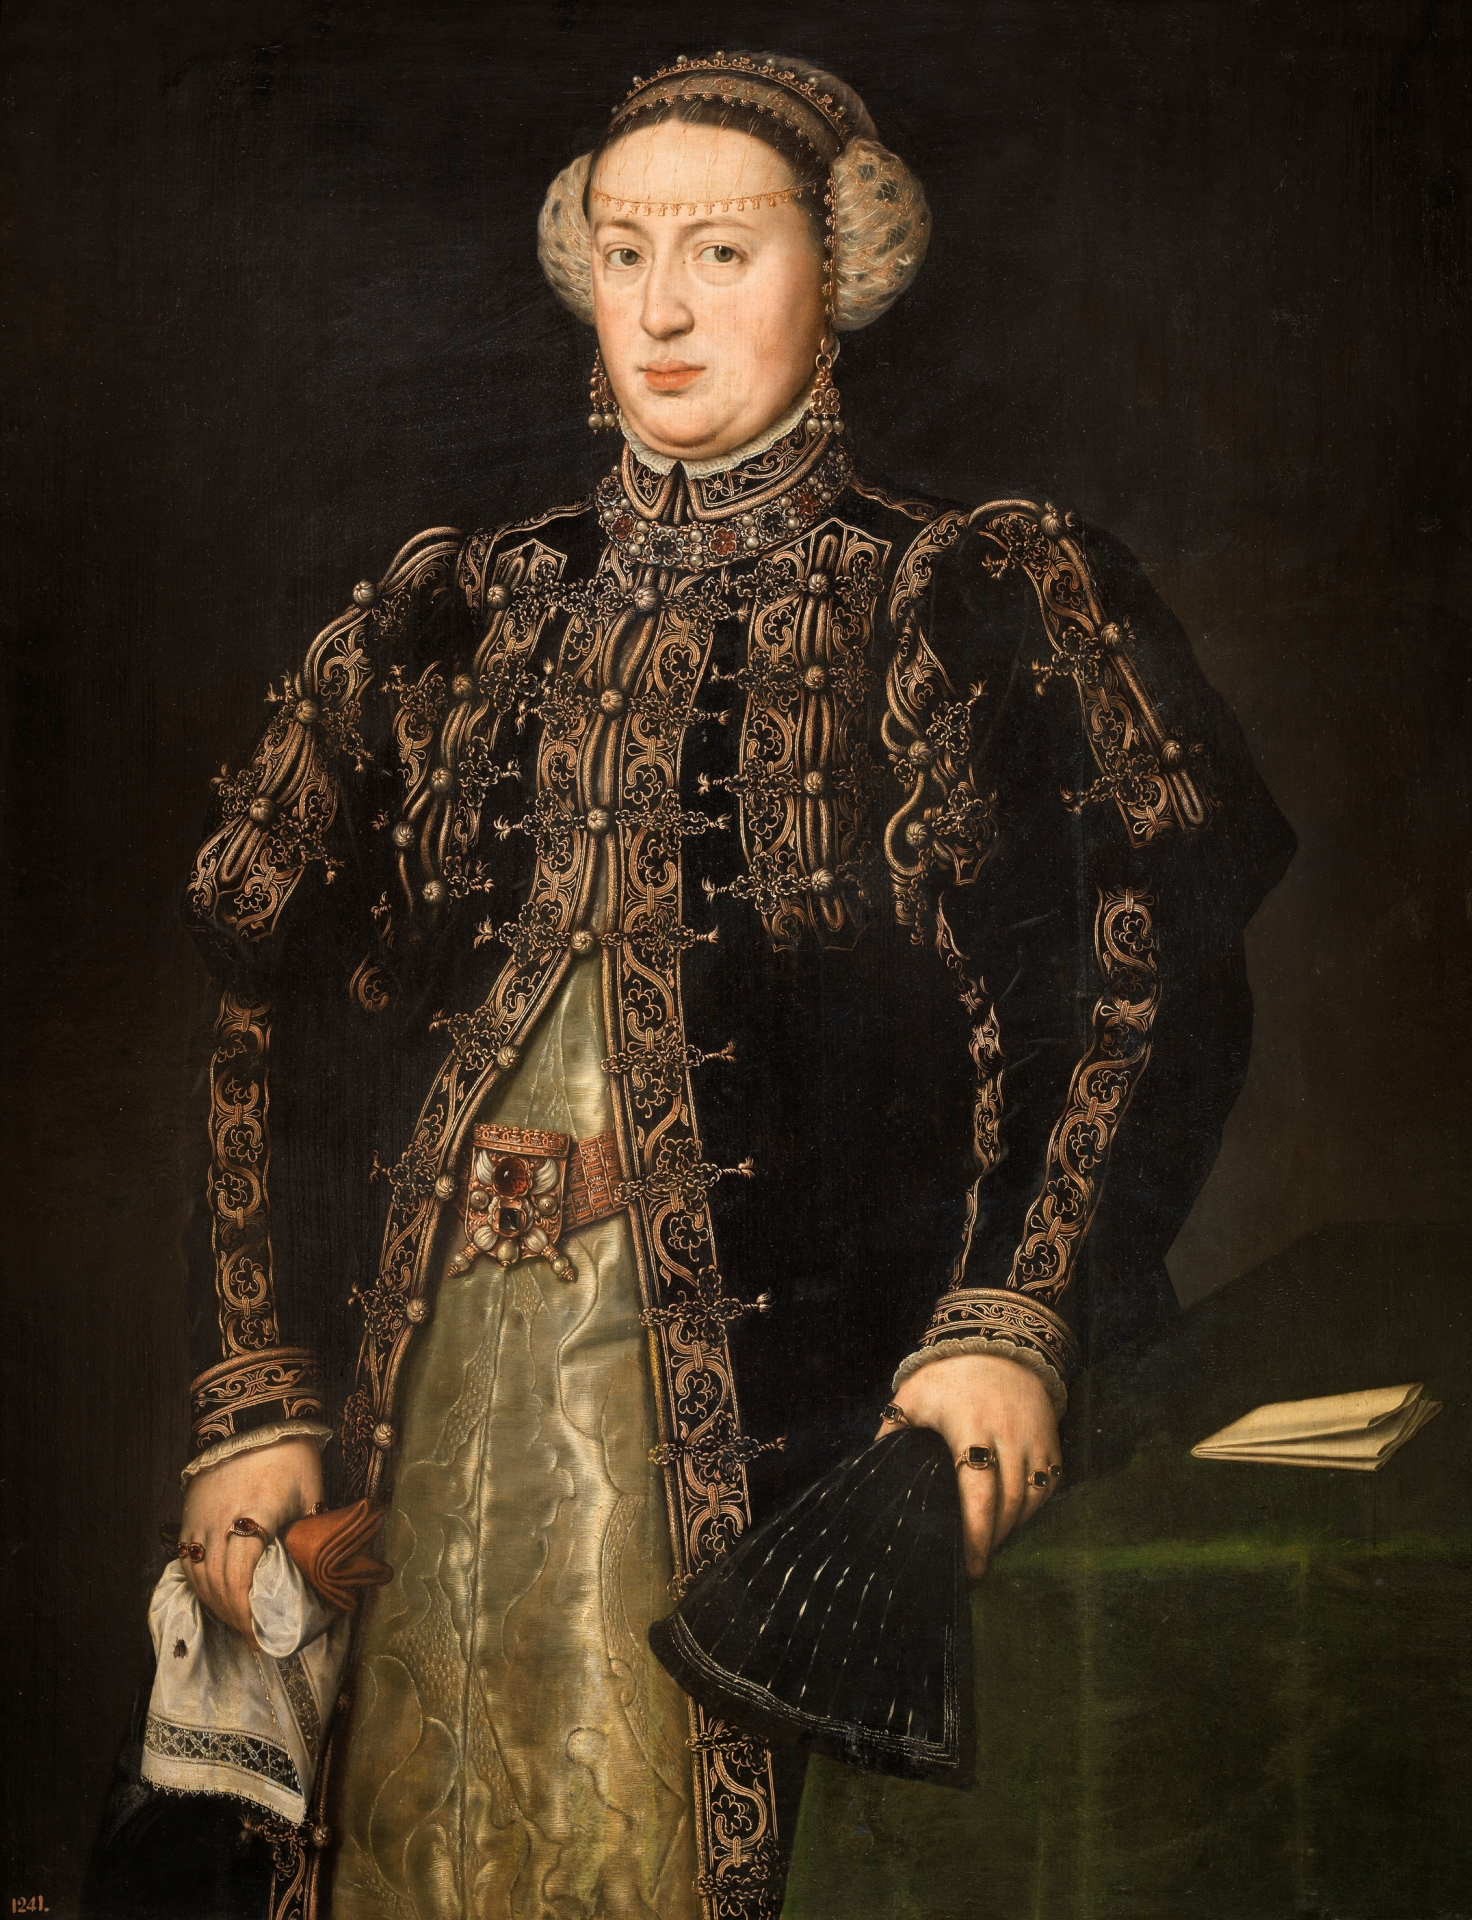 Doña Catalina de Austria, wife of Juan III of Portugal, oil on canvas, Antonio Moro 1552-53. (Image courtesy of the Prado Museum)